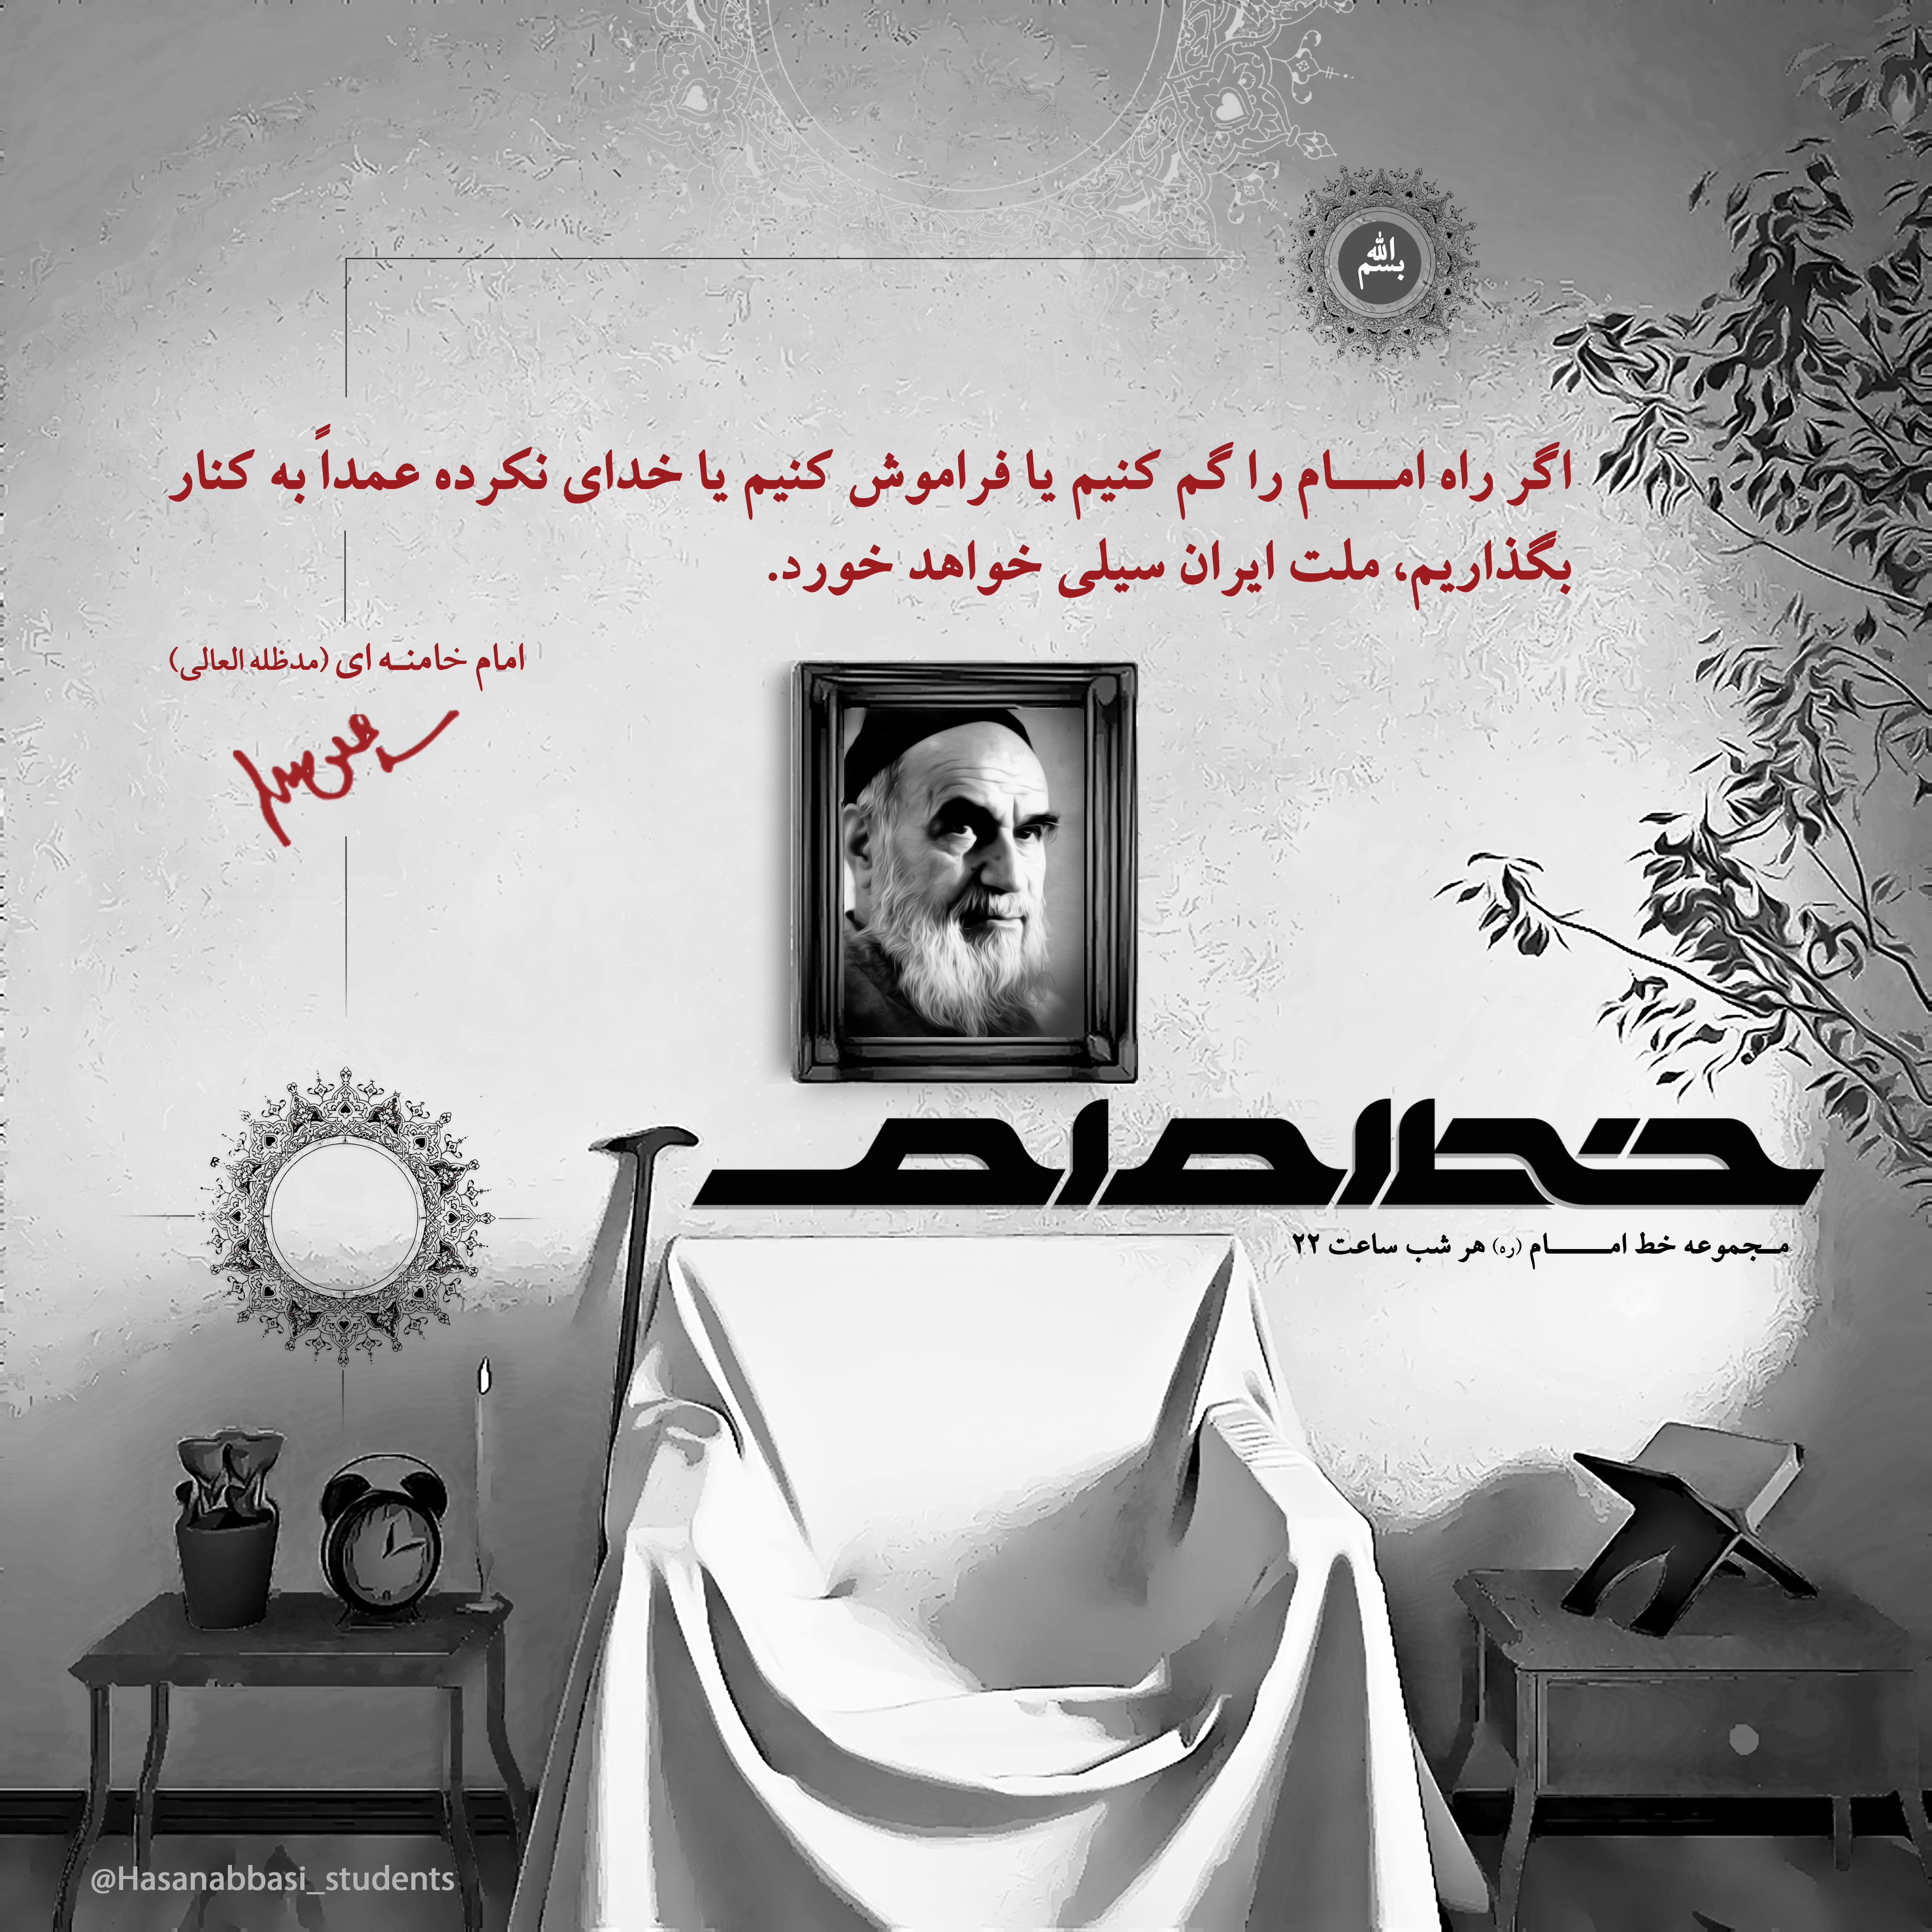 IMG 00 خط امام